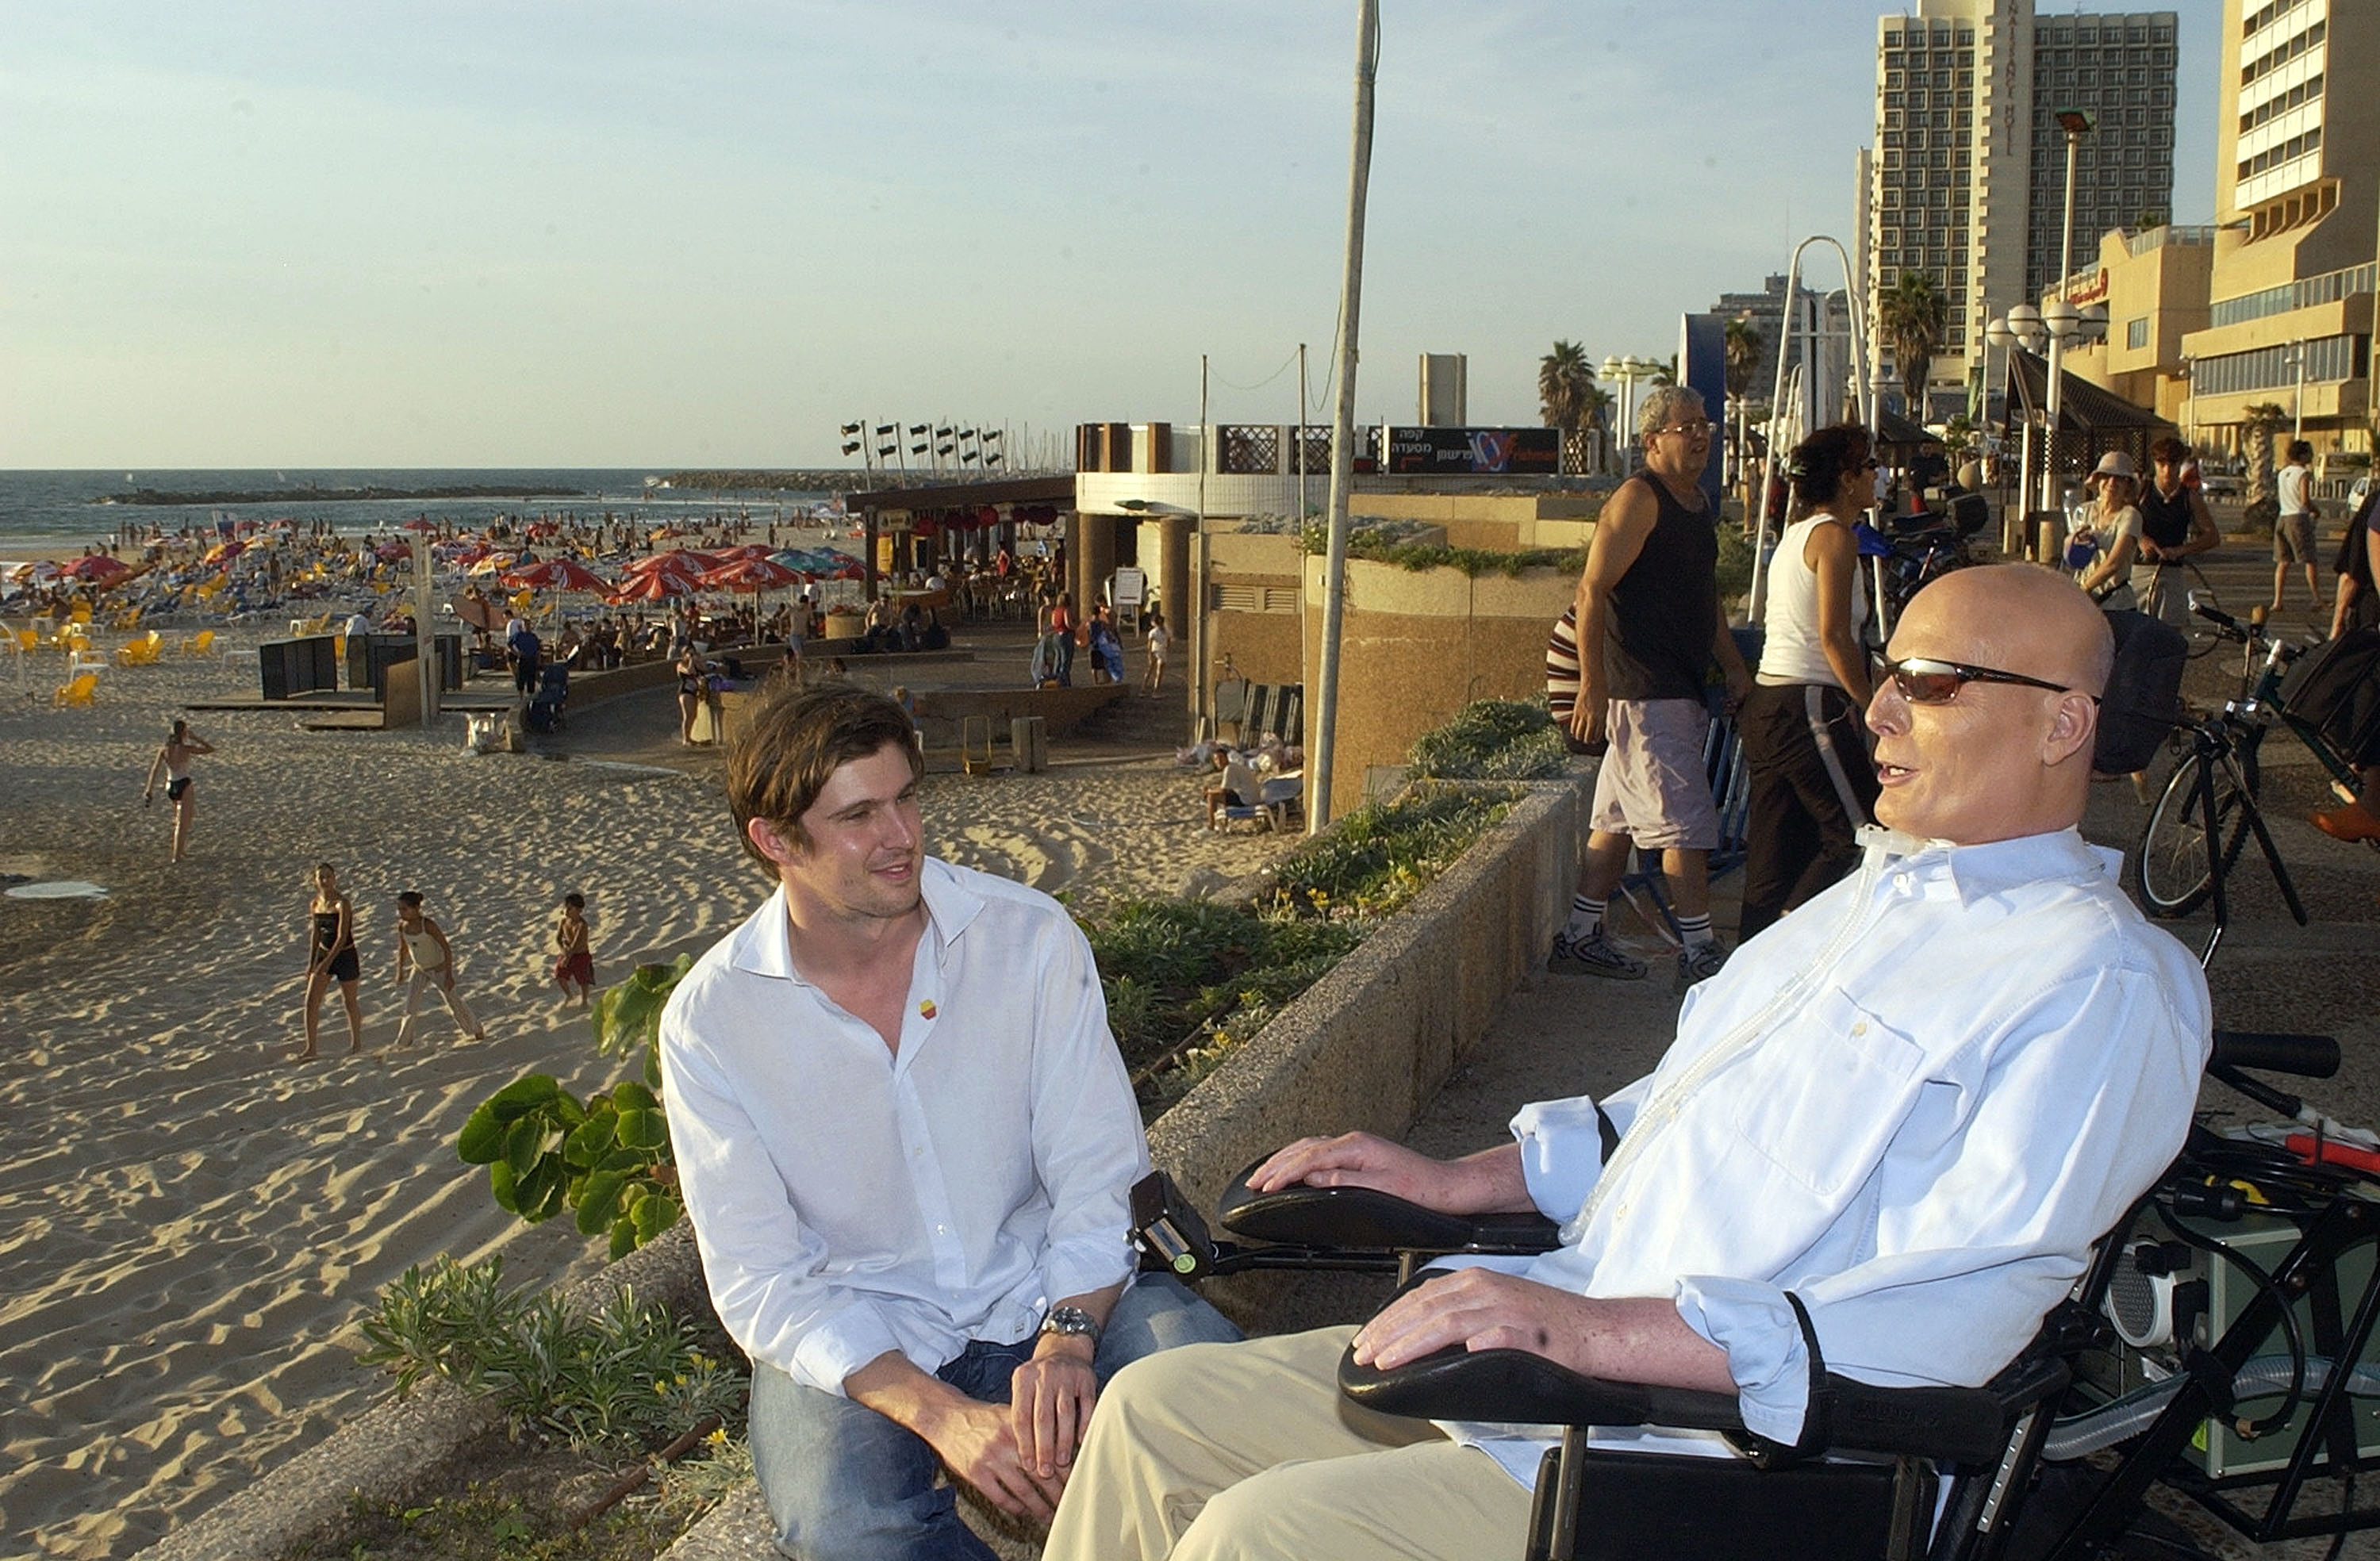 Former actor Christopher Reeve and his son Matthew talk on the promenade overlooking the Mediterranean Sea on August 1, 2003, in Tel Aviv, Israel. (Getty)